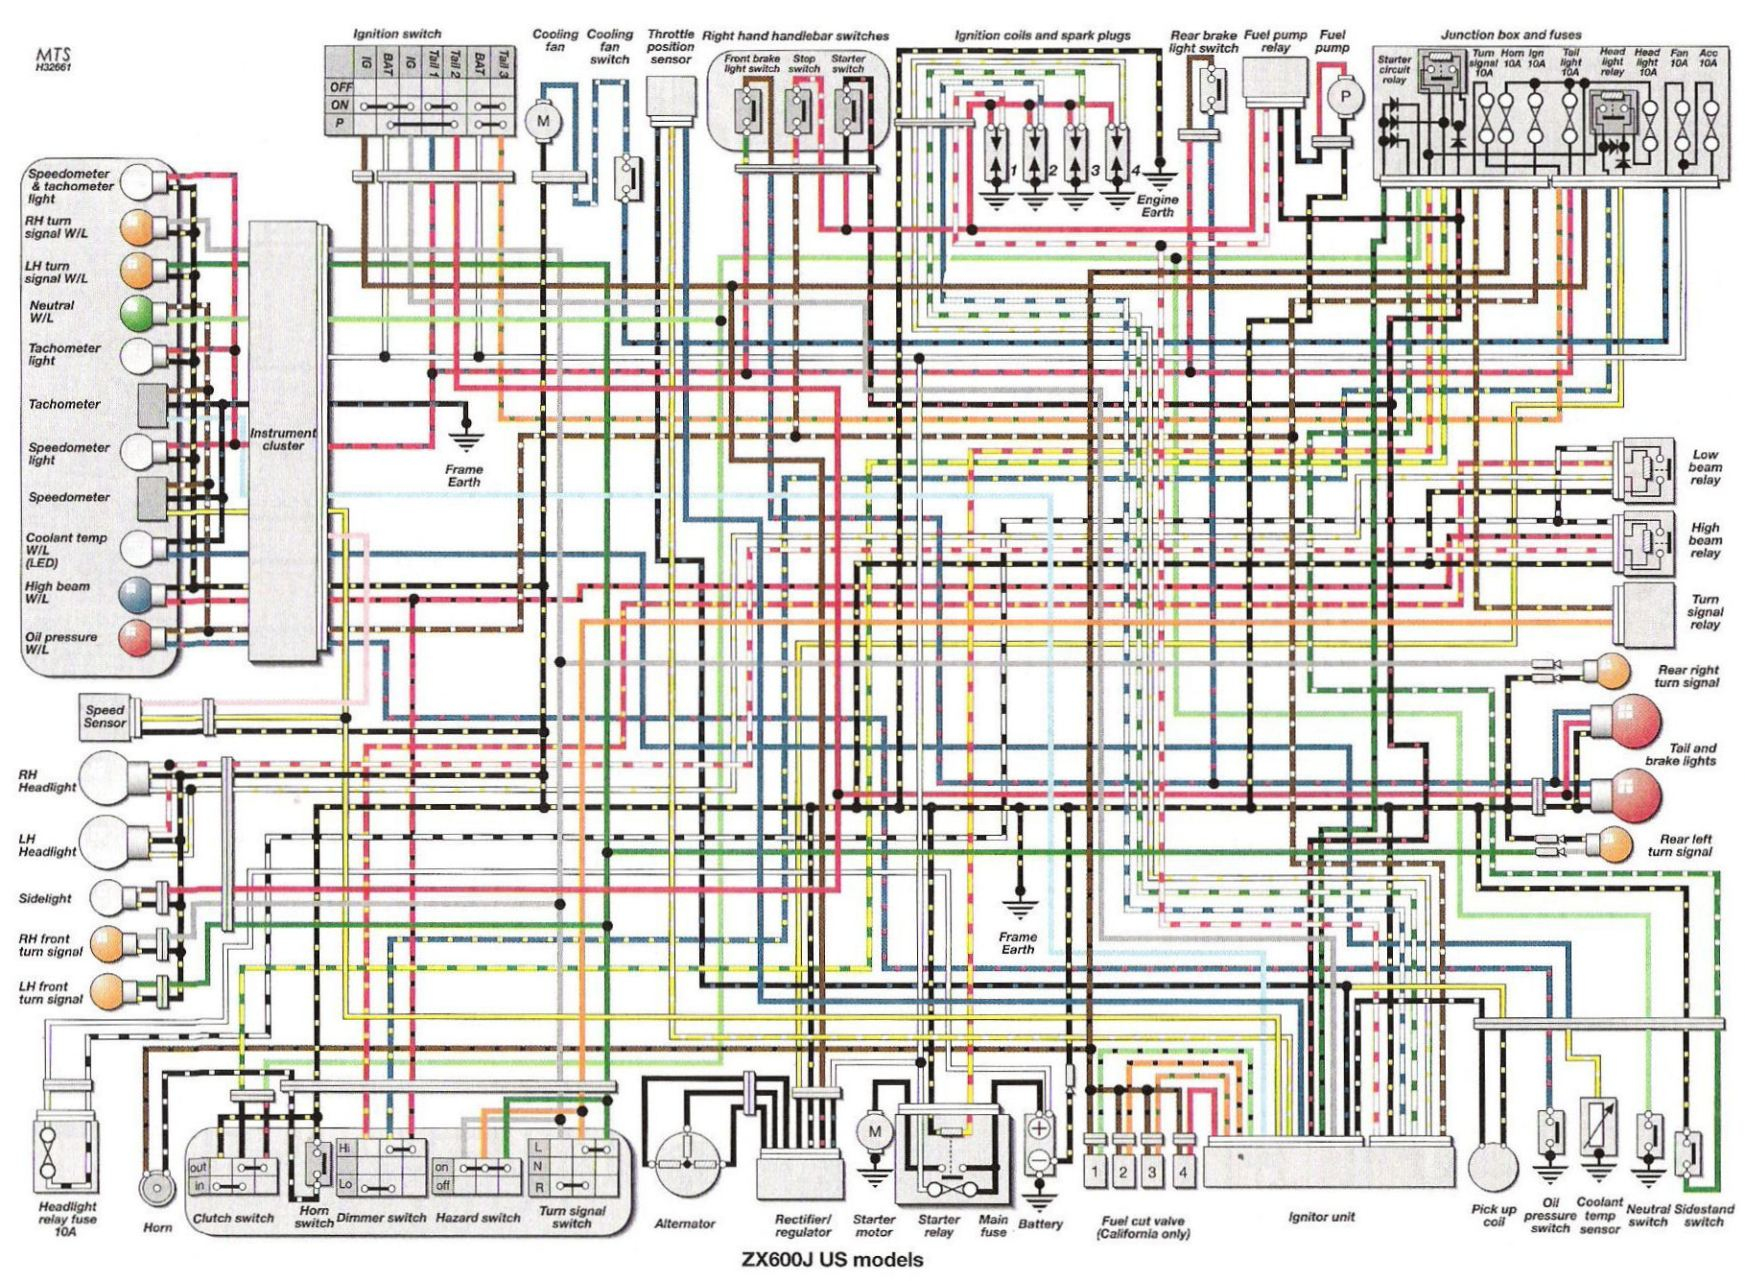 gsxr wiring diagram image wiring 05 gsxr 600 wiring diagram 05 auto wiring diagram database on 2006 gsxr 1000 wiring diagram